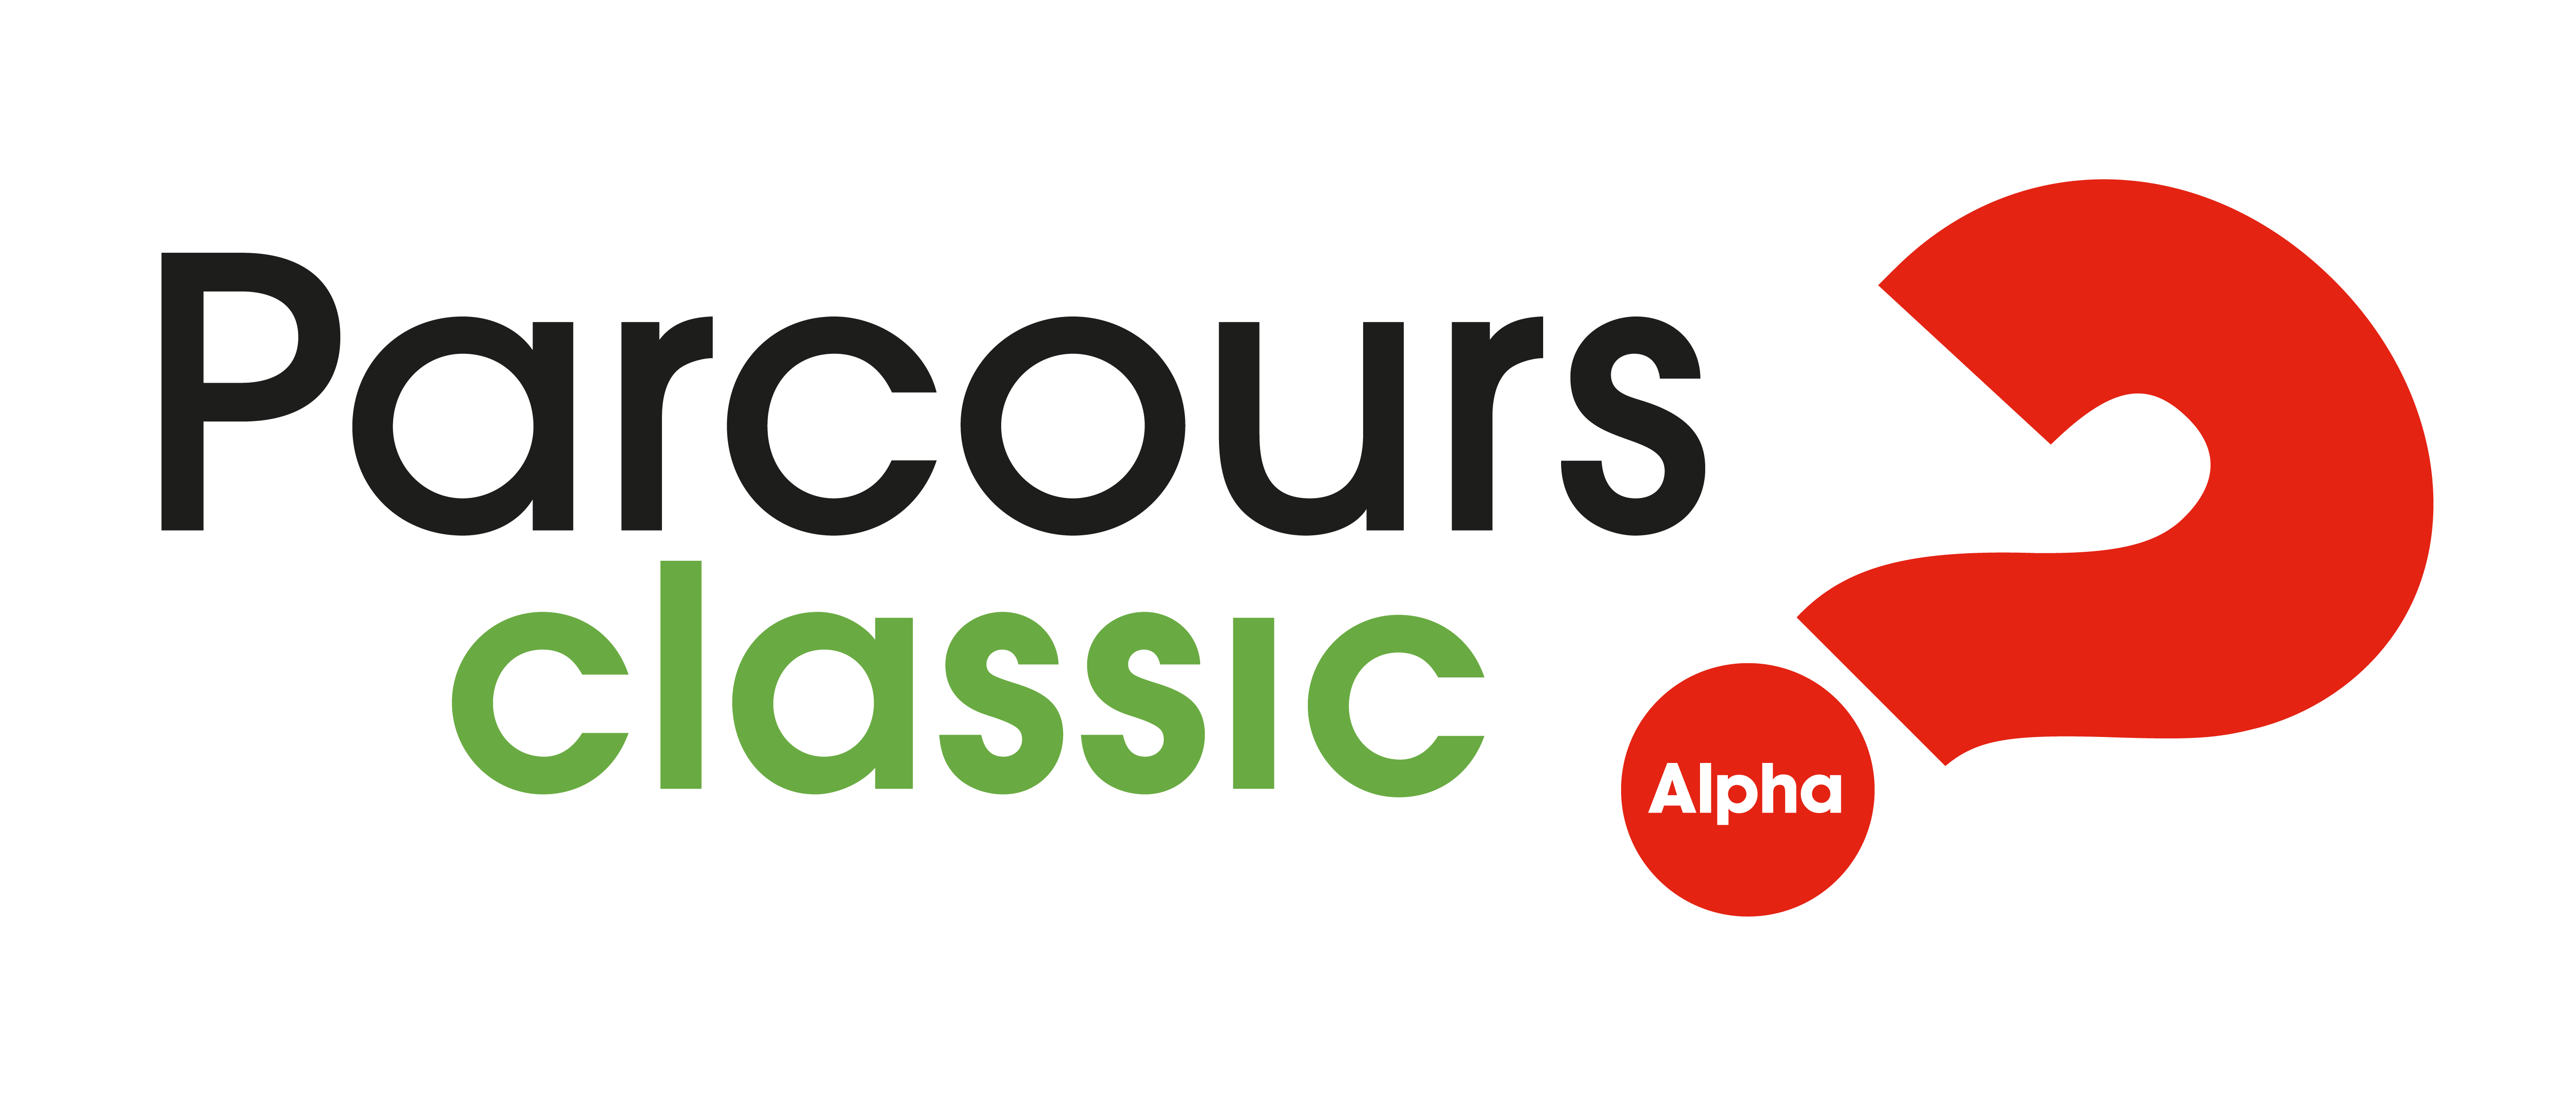 LOGO_VF_Parcours-Classic-1-1